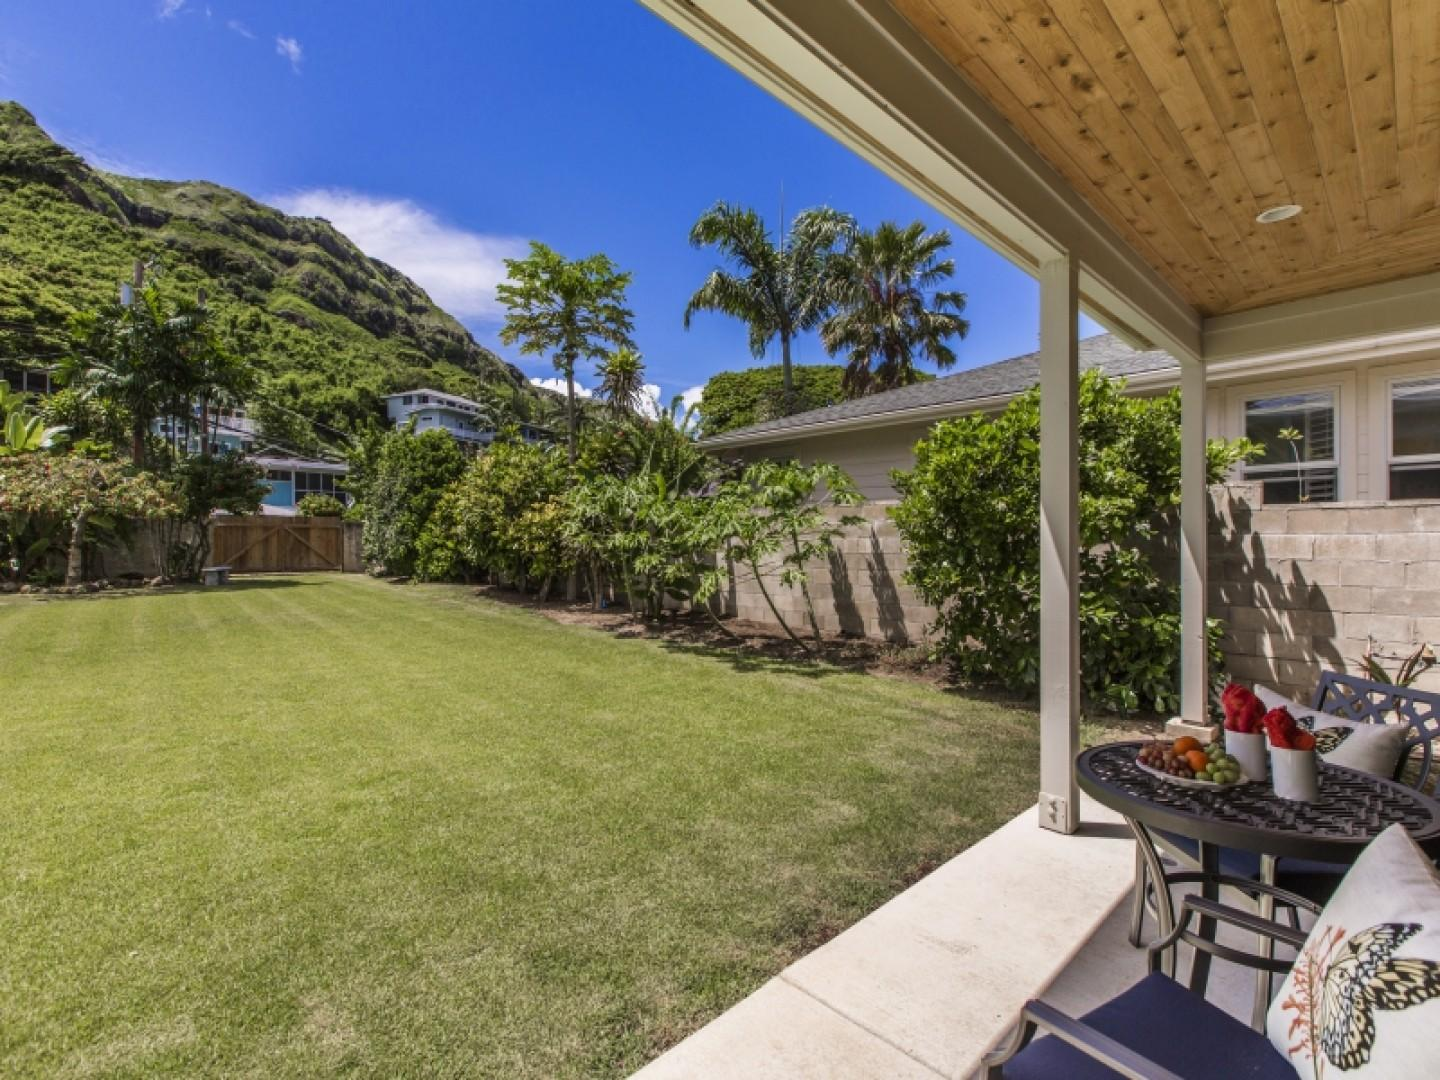 Covered lanai allows guests to enjoy the beautiful outdoor lawn area.